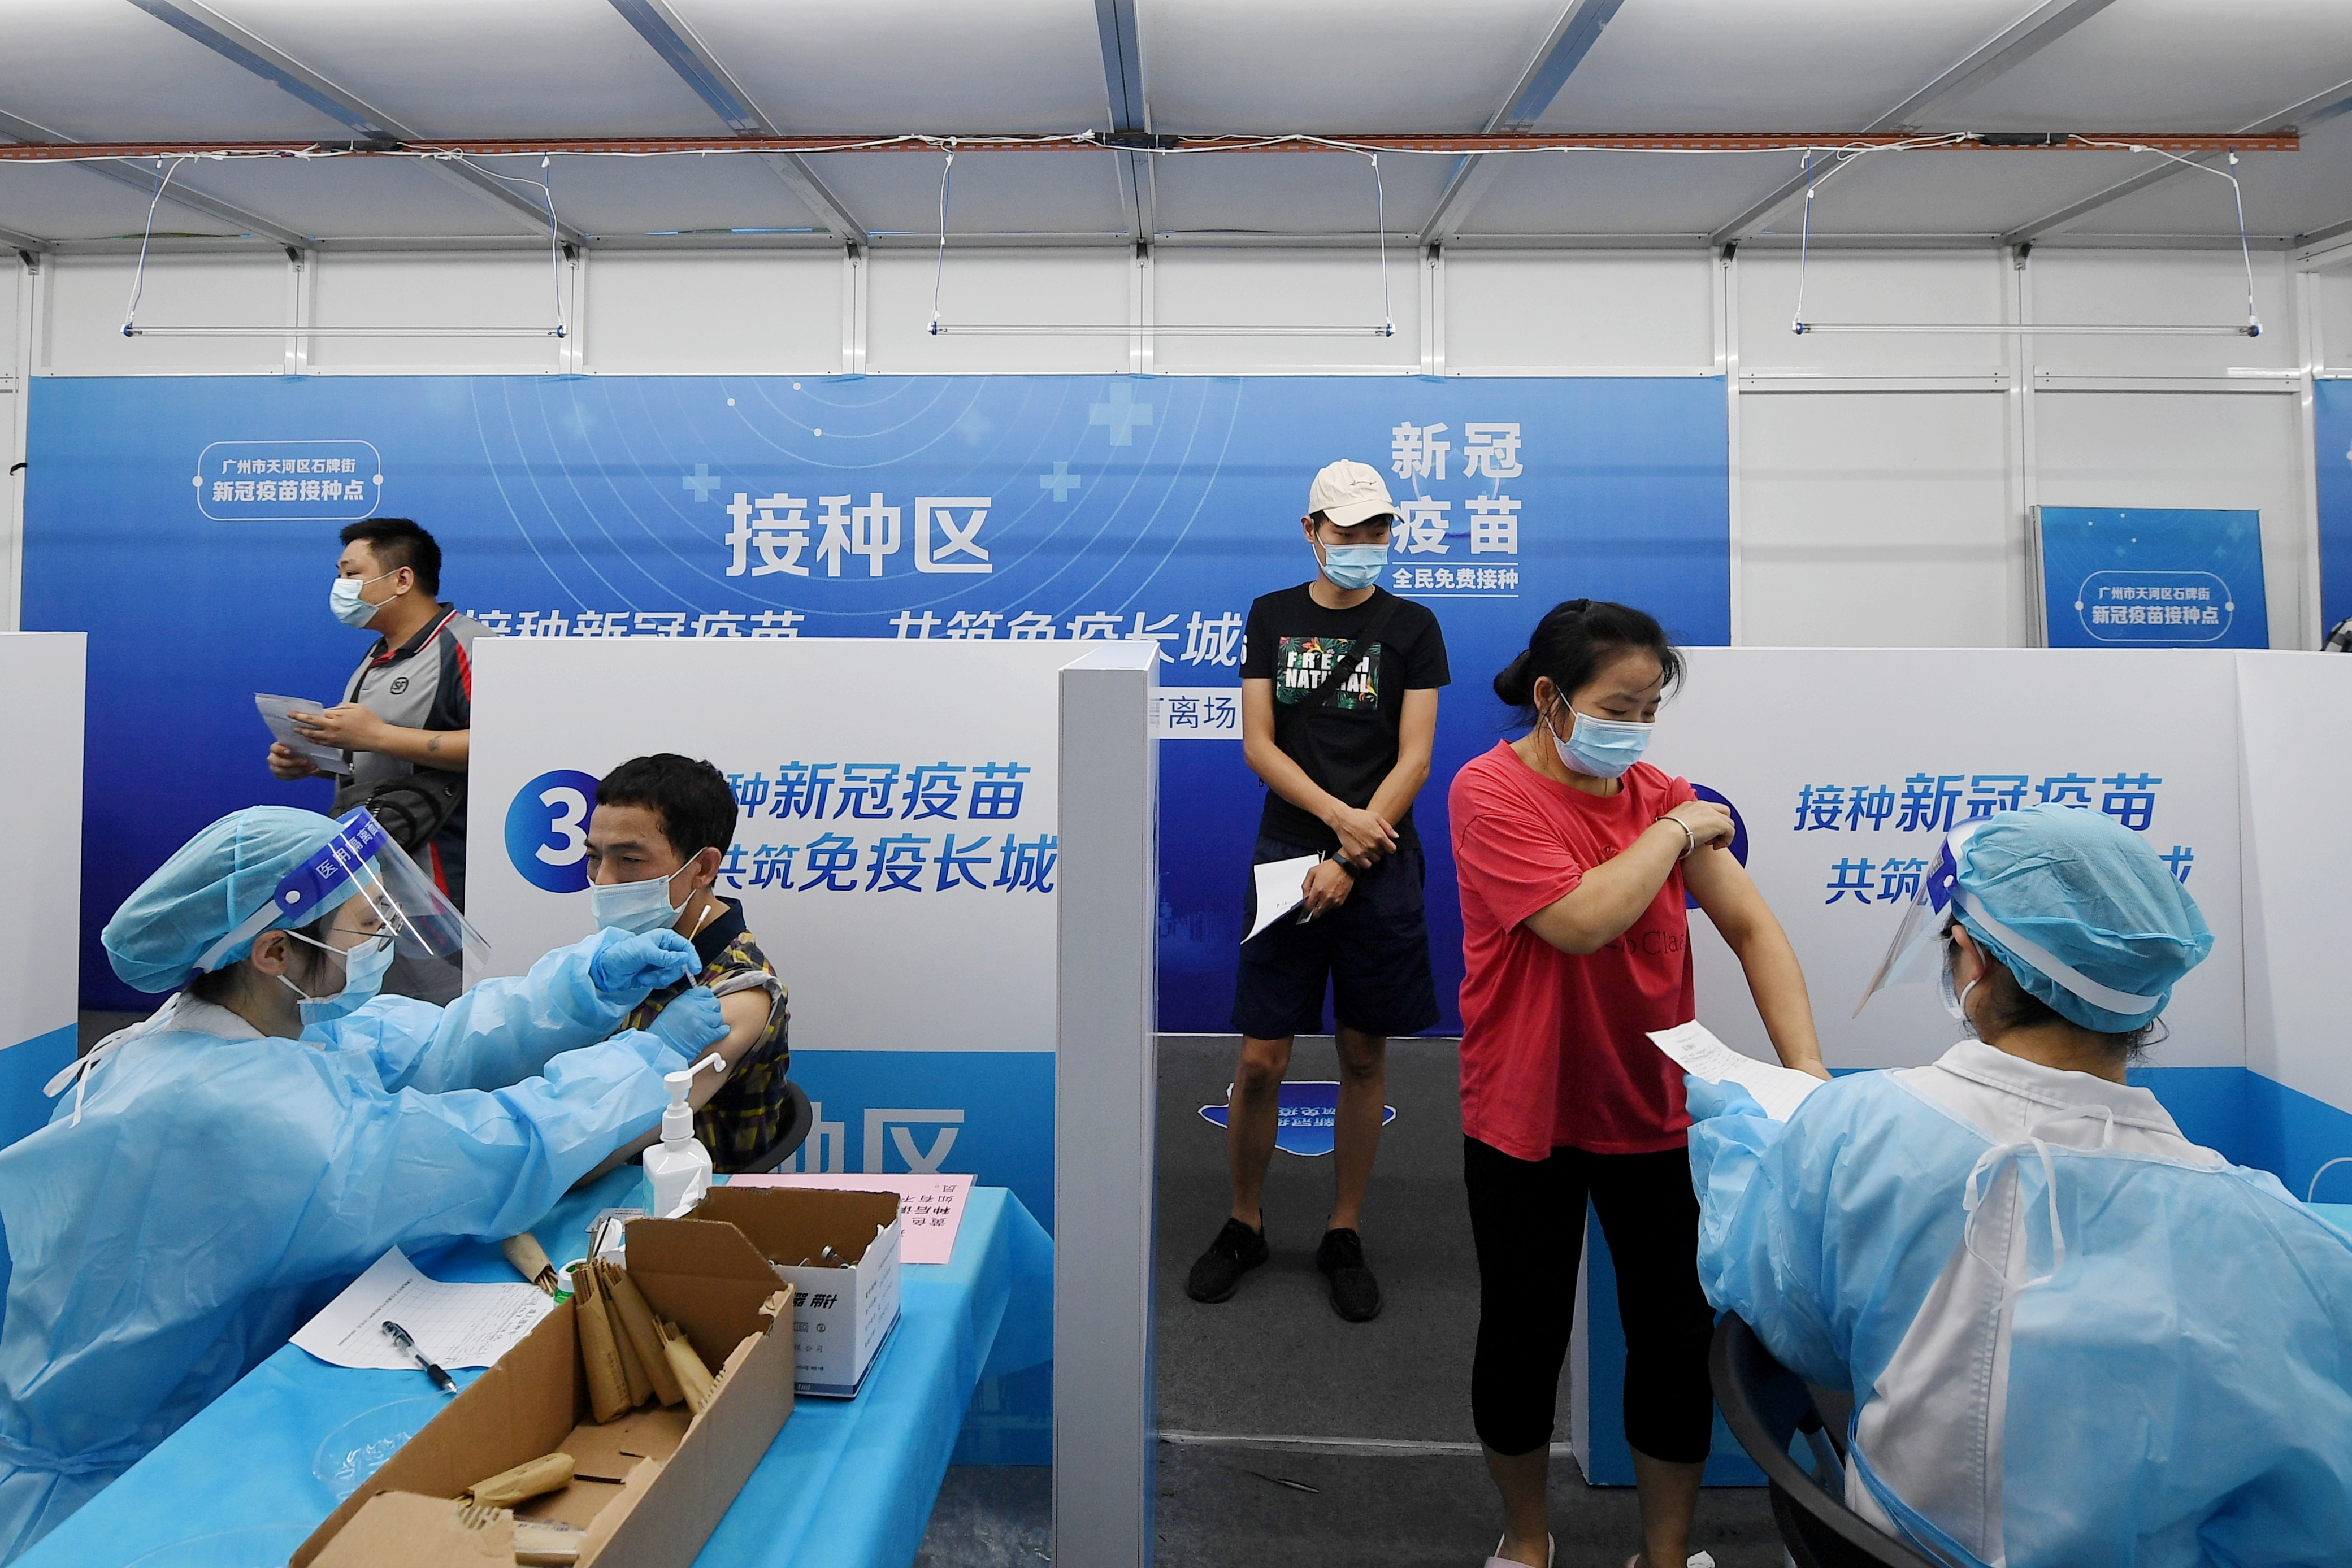 Residents receive vaccines against the coronavirus disease (COVID-19) at a makeshift vaccination site in Guangzhou, Guangdong province, China June 21, 2021. Picture taken June 21, 2021. cnsphoto via REUTERS